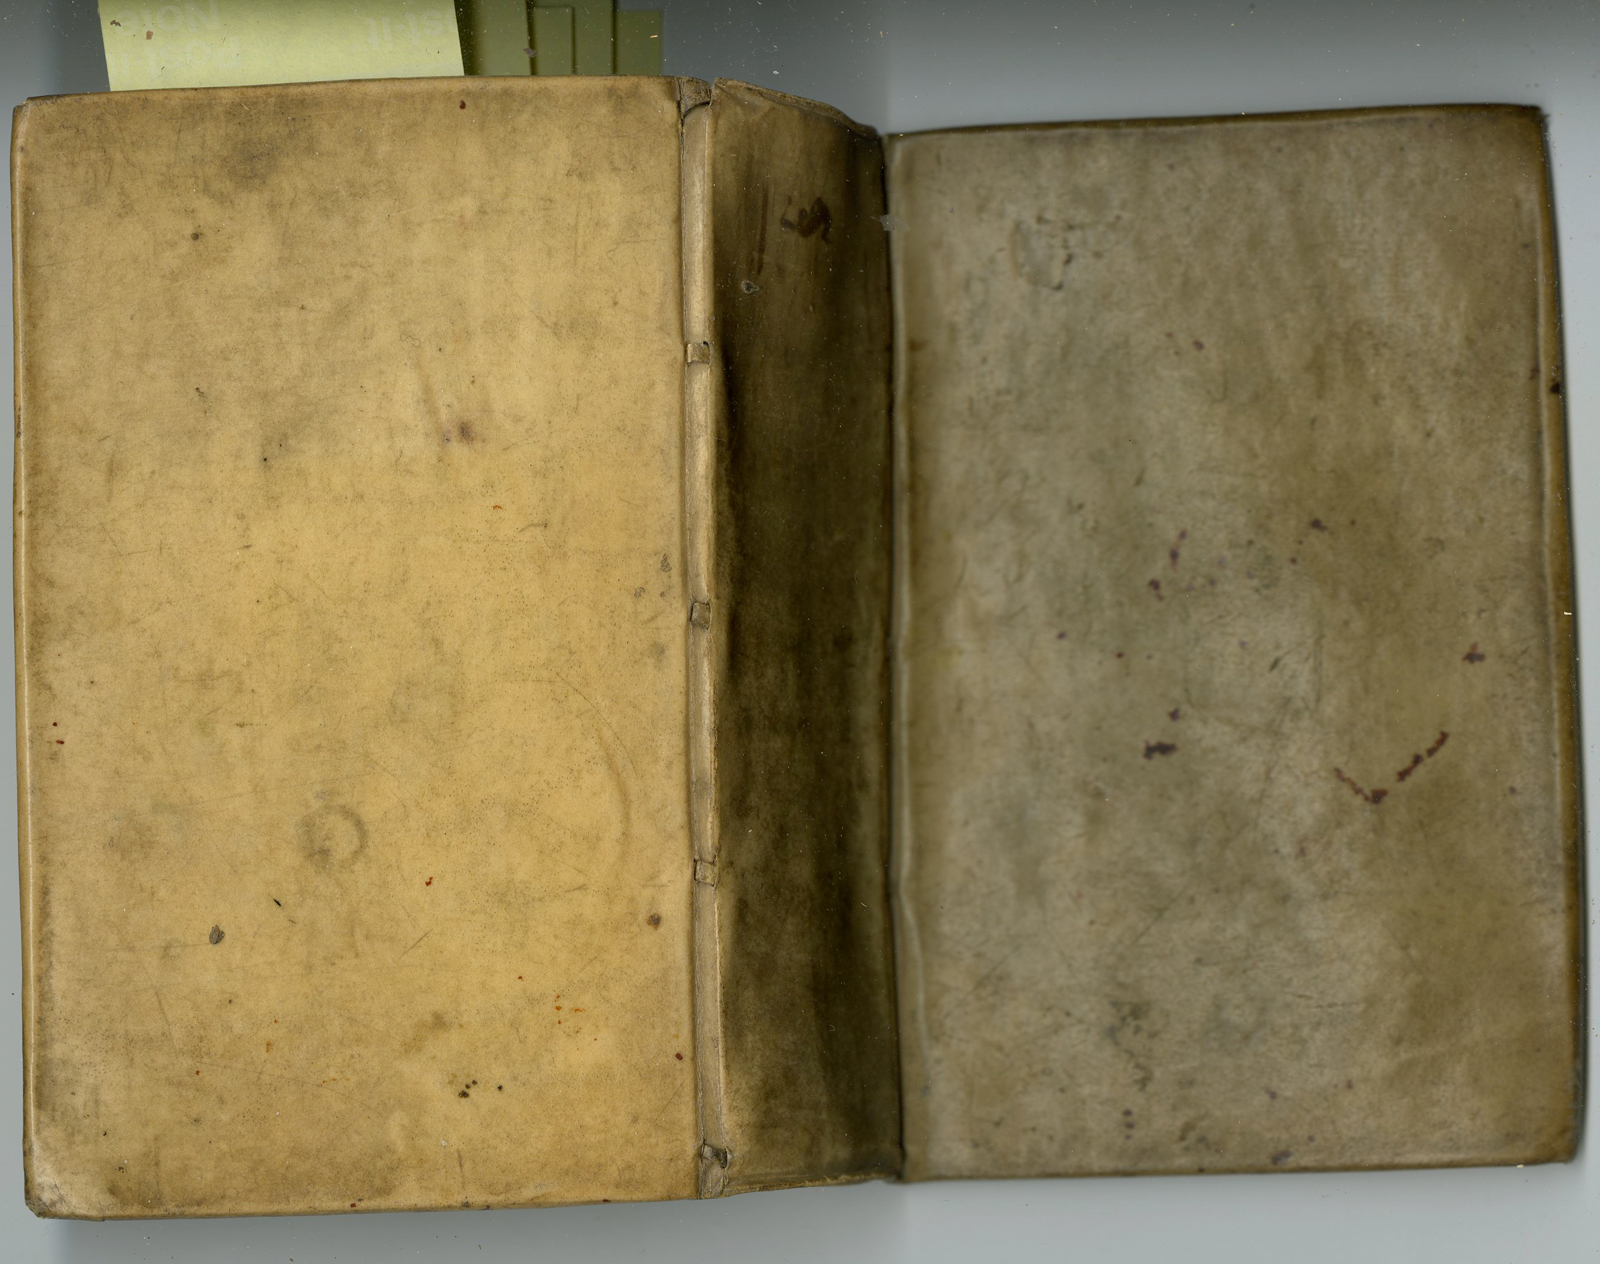 Spiegel Amsterdam Mayvogel Jacob Coenraeds Emblem Book For Christian Values Amsterdam 1701